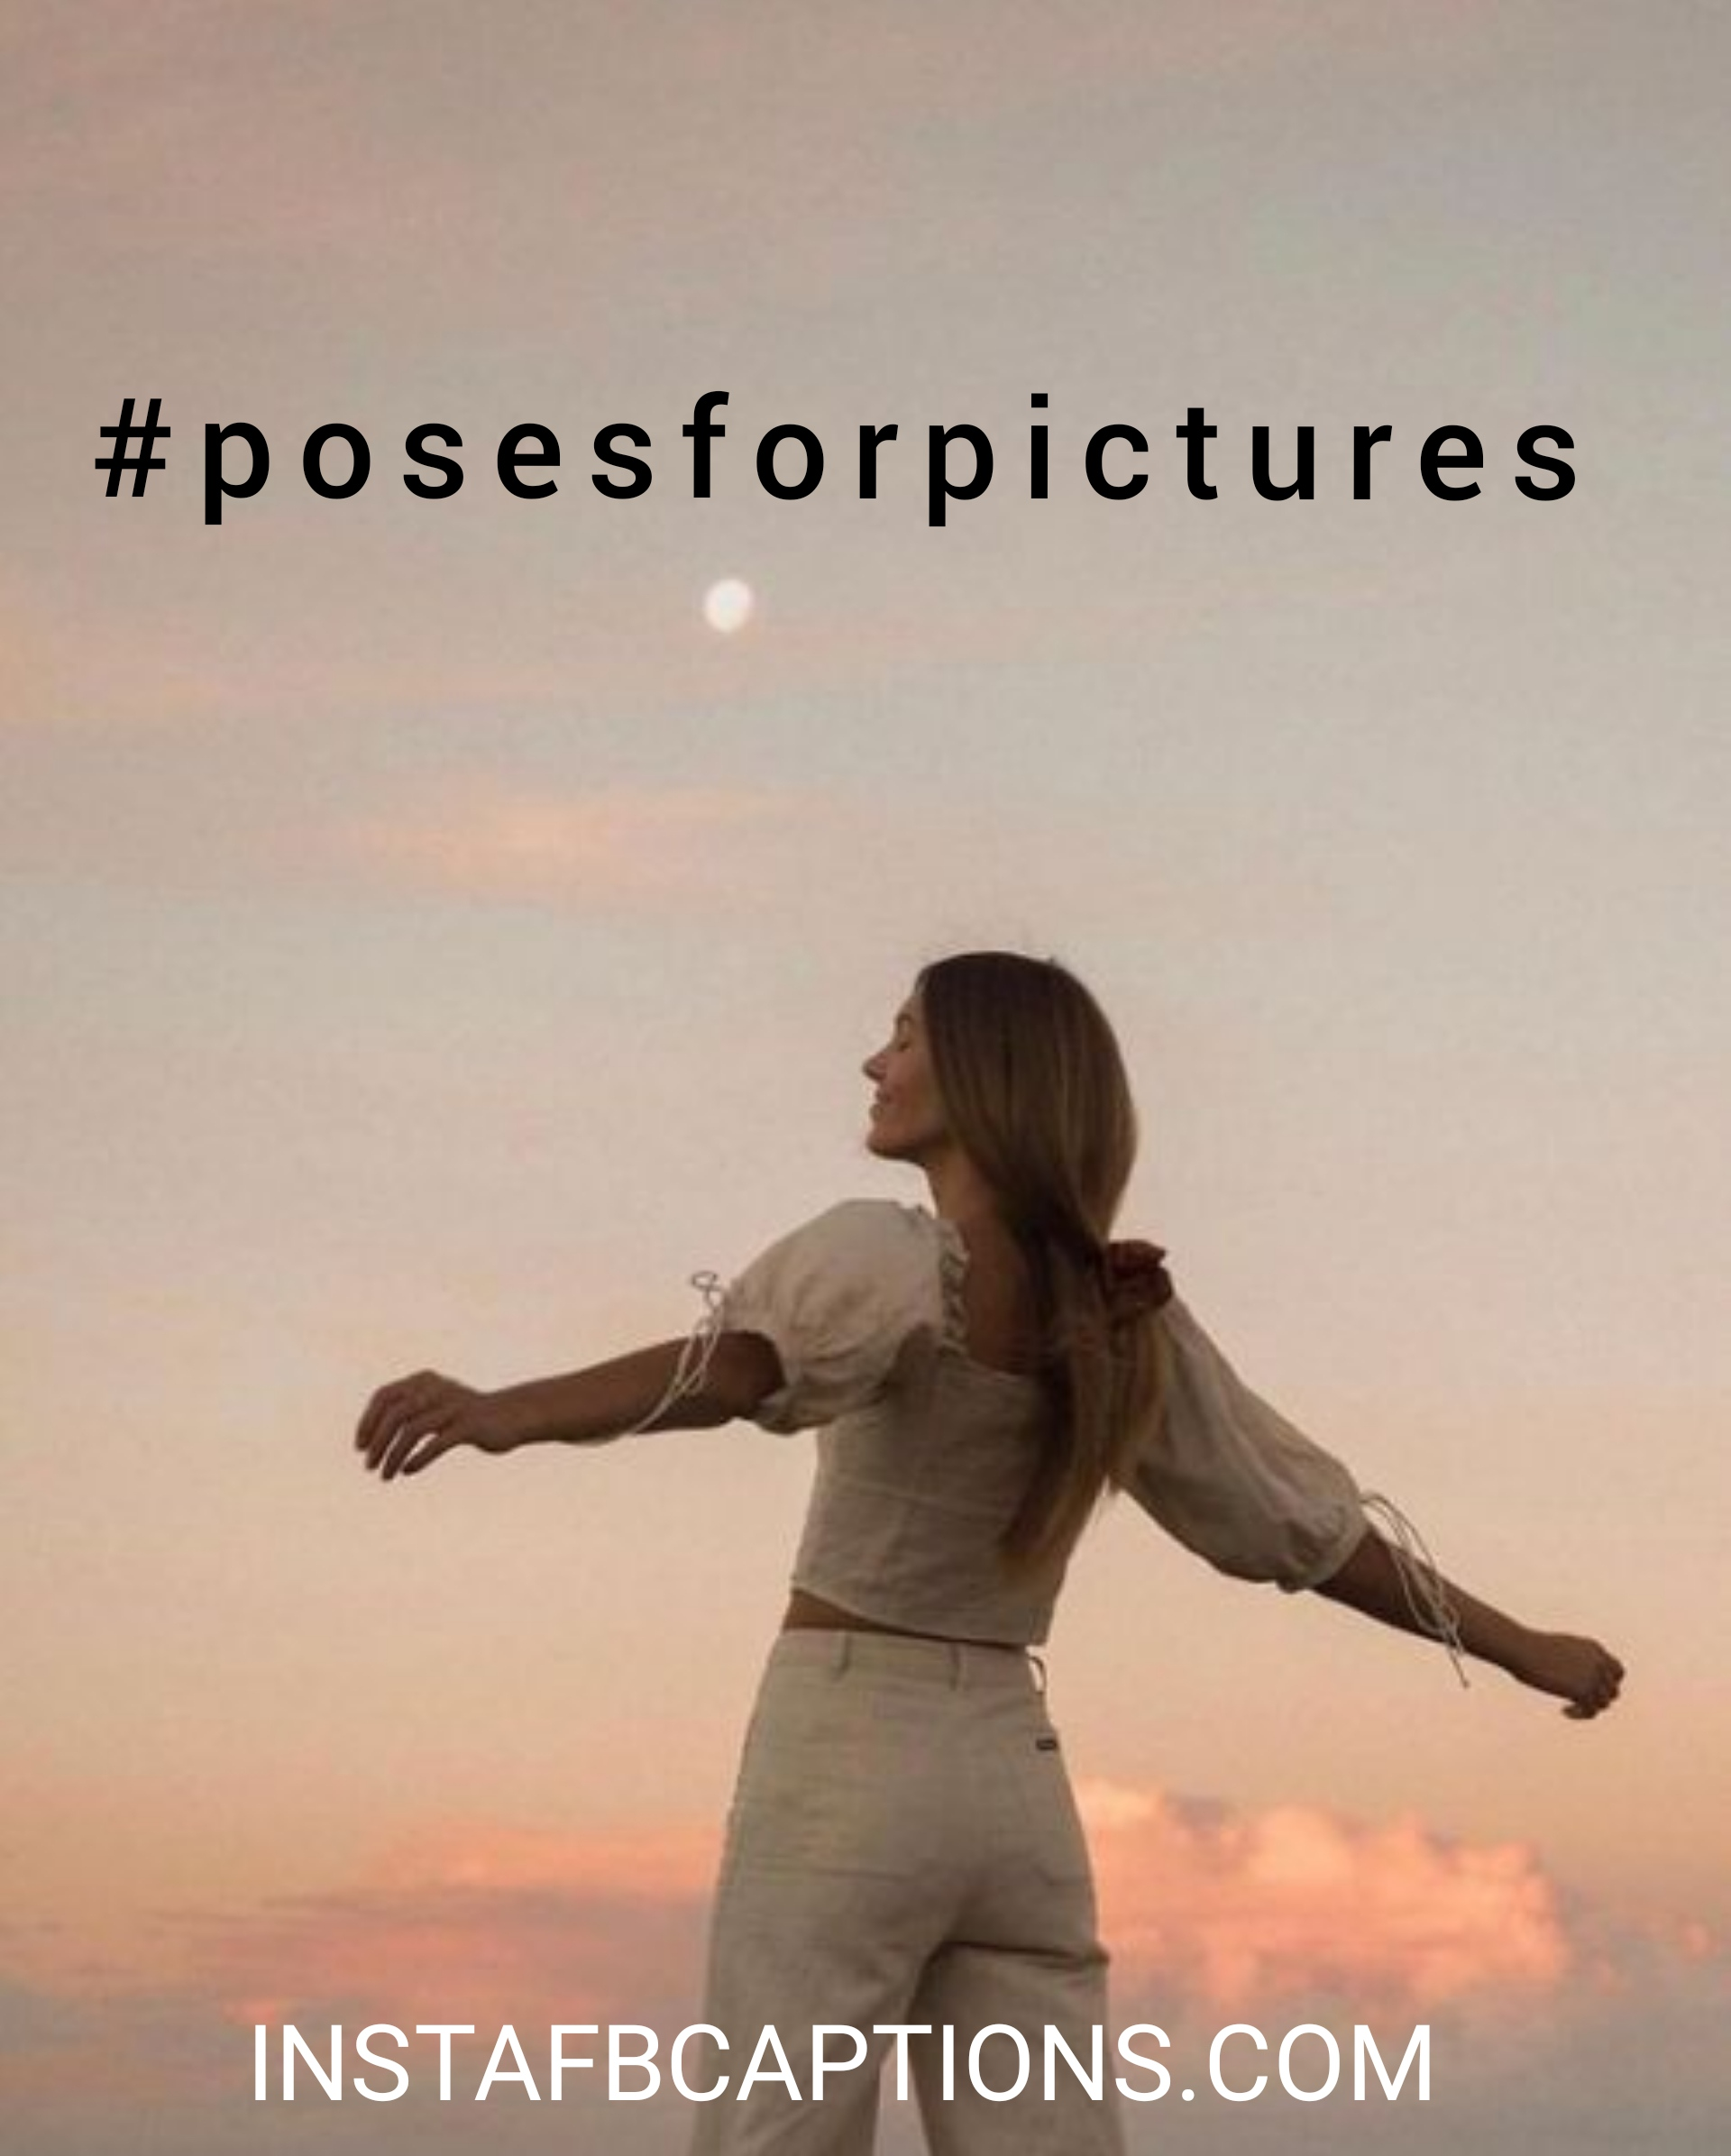 #posesforpictures  - posesforpictures - Standing pose captions|(side look attitude model)